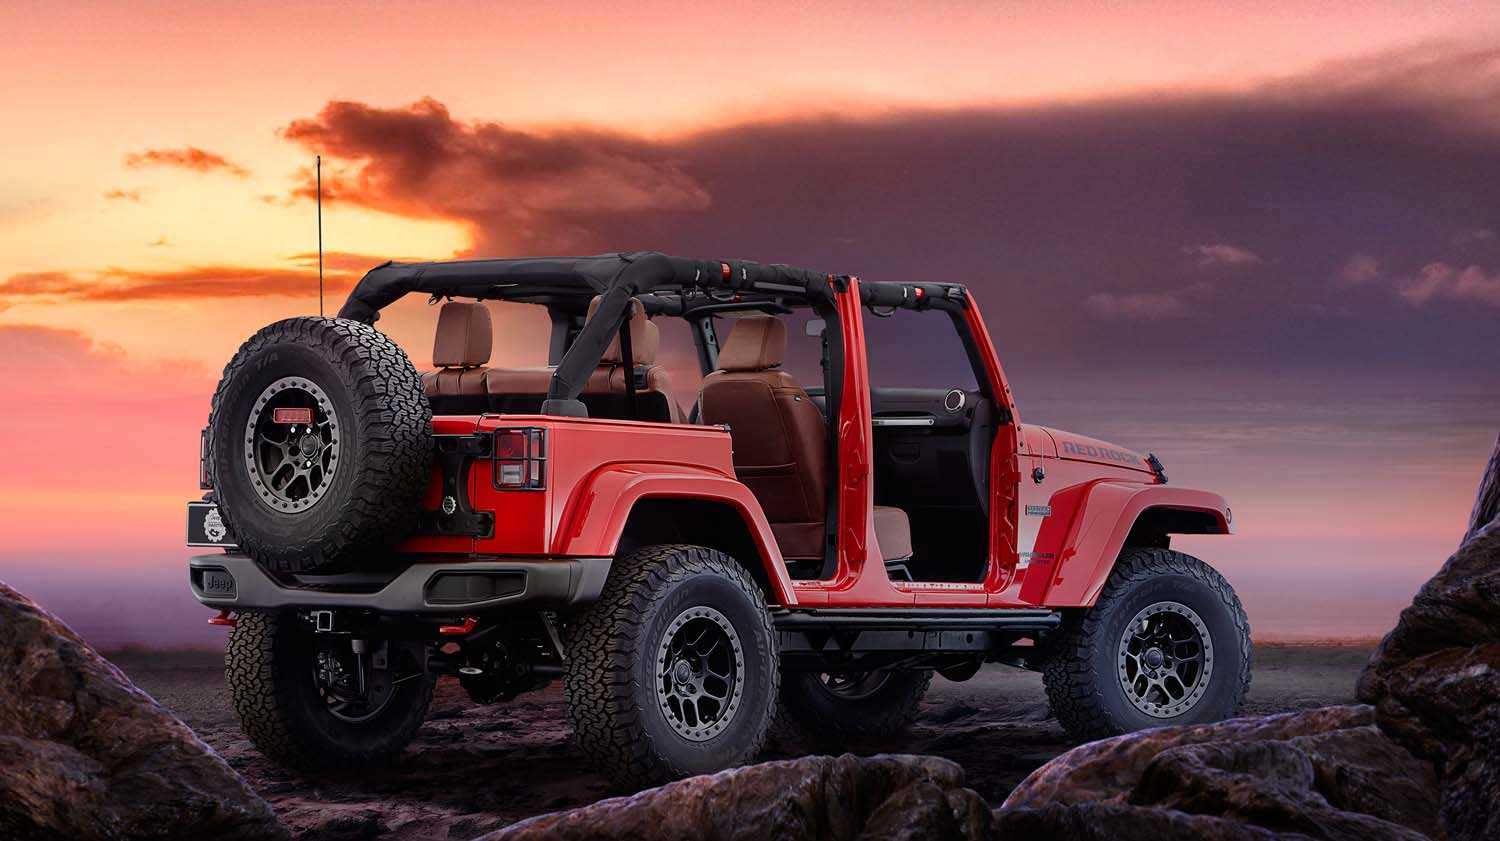 Вид сзади Jeep Wrangler Red Rock.